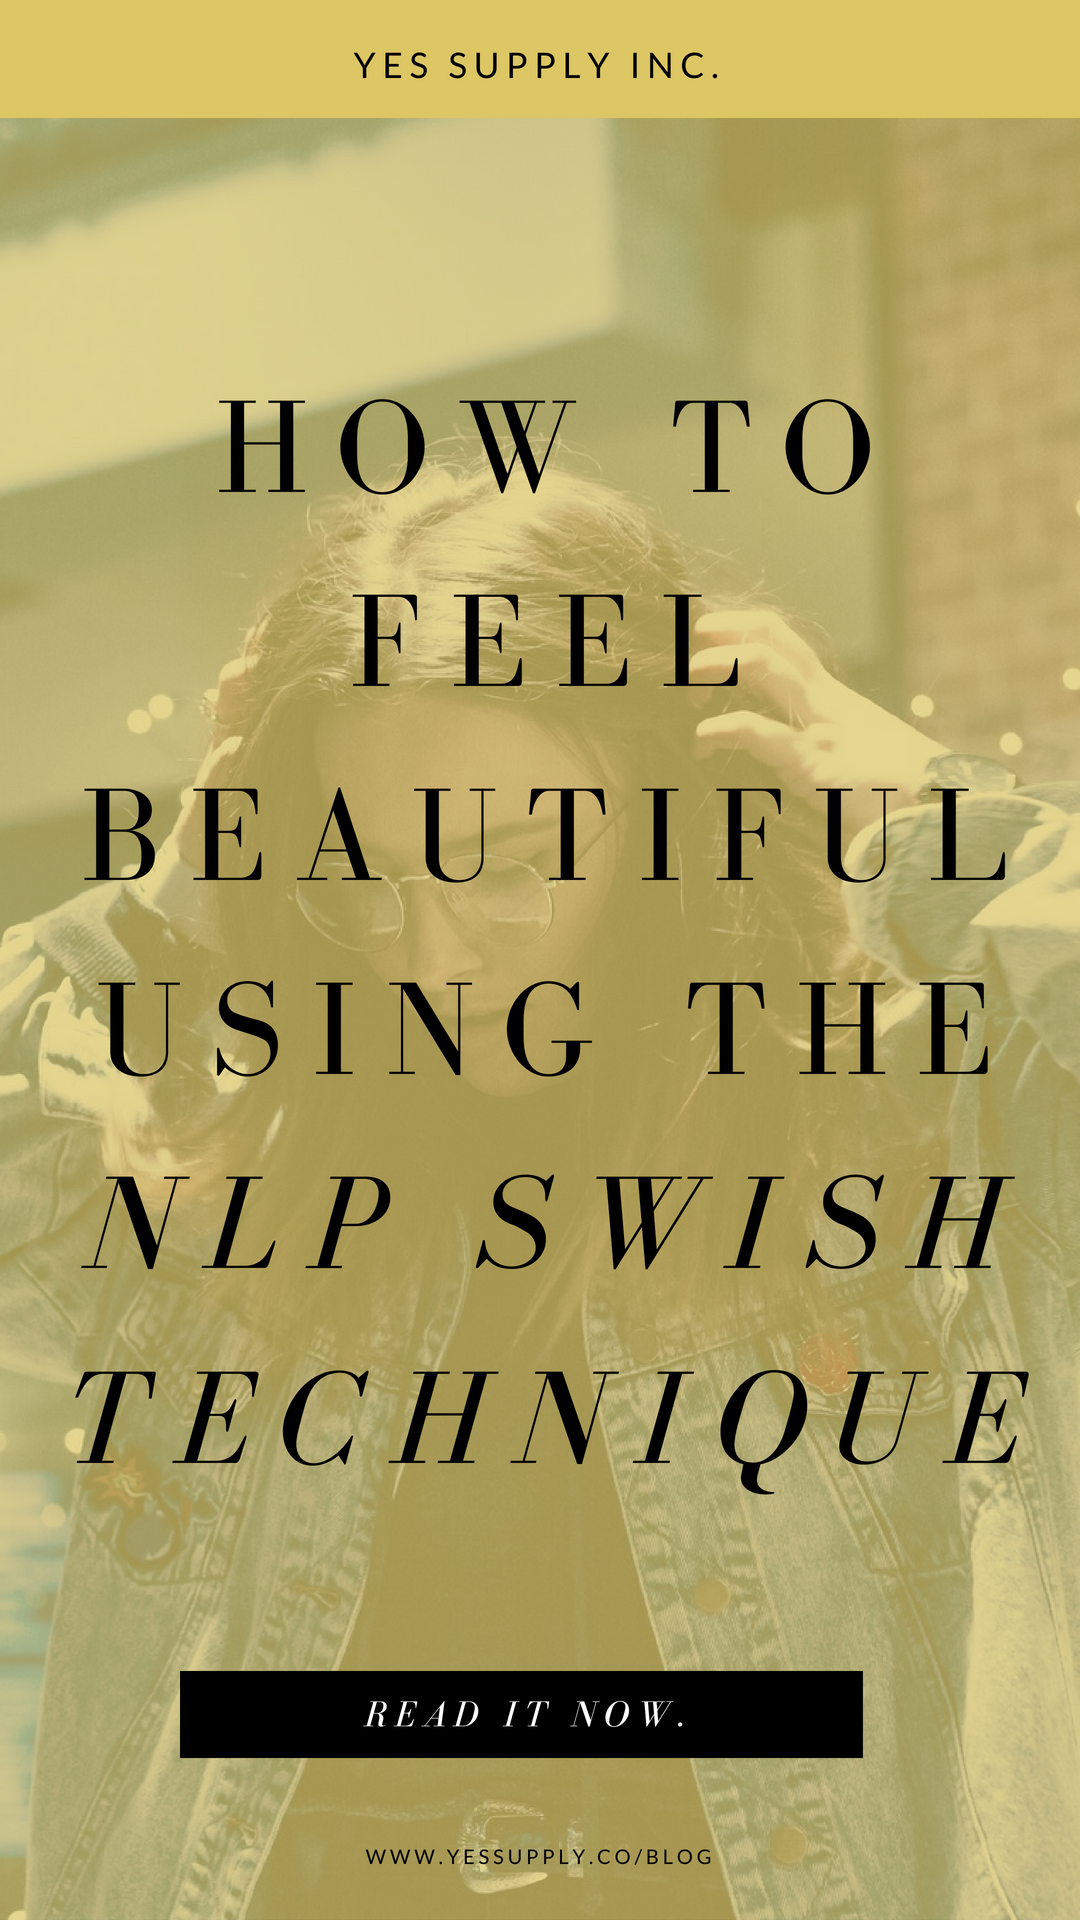 Want to truly feel beautiful but nothing is working? I know that I felt bad about myself until I discovered an NLP technique that helped me love who I am, and see my own beauty and practice self-care.